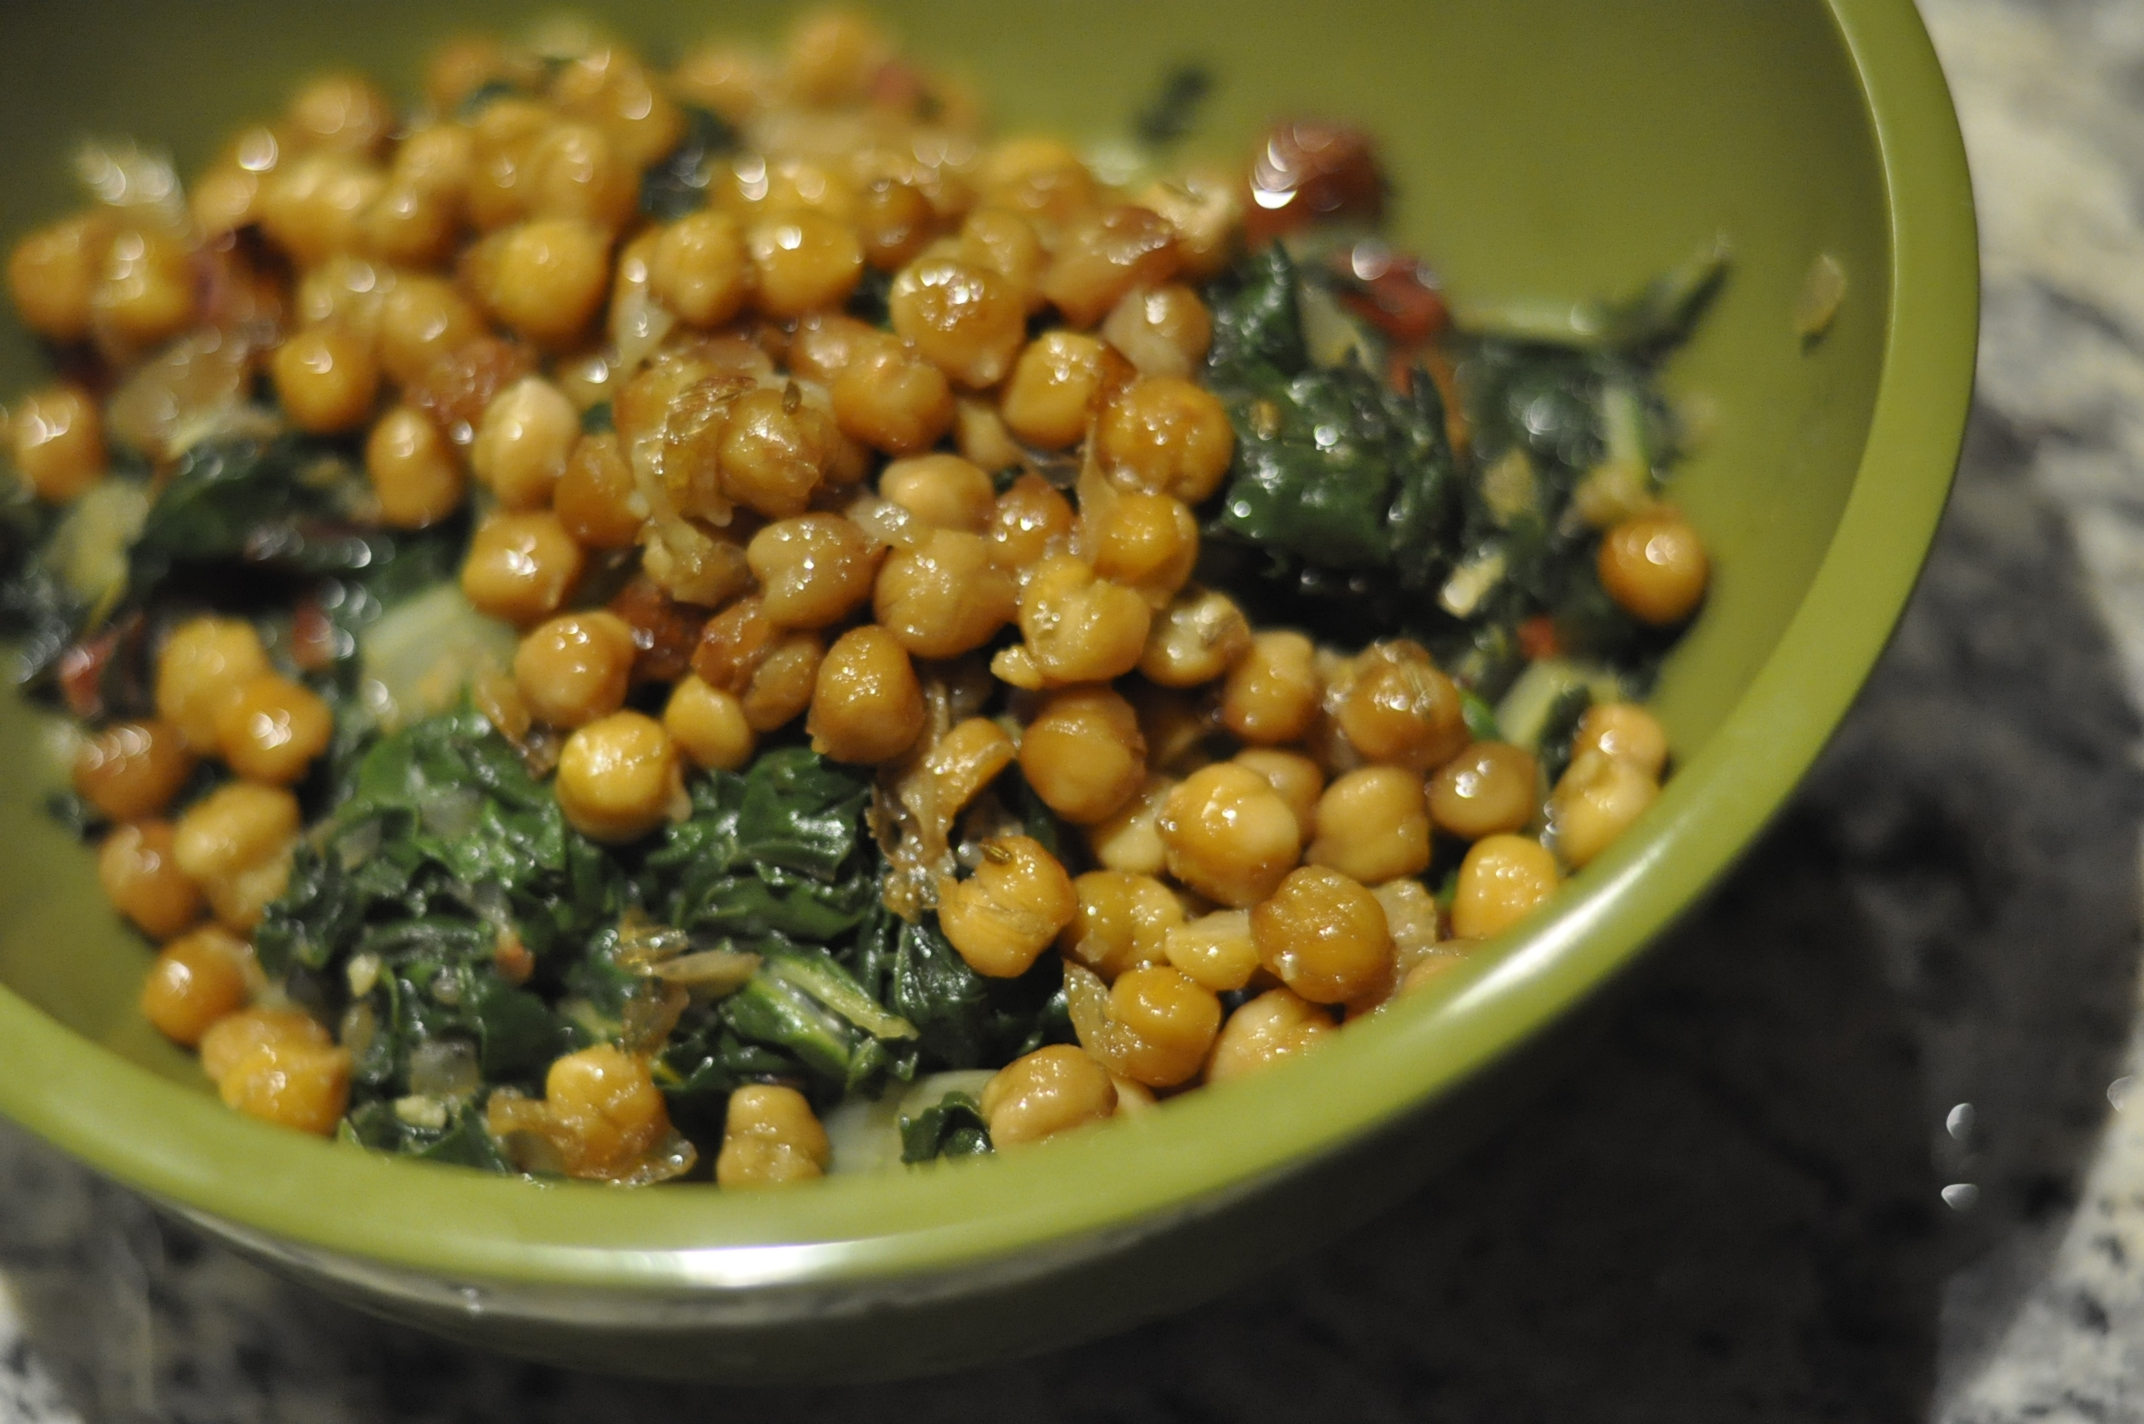 Roasted Garbanzo Beans and Garlic with Rainbow Chard | Cultivating ...